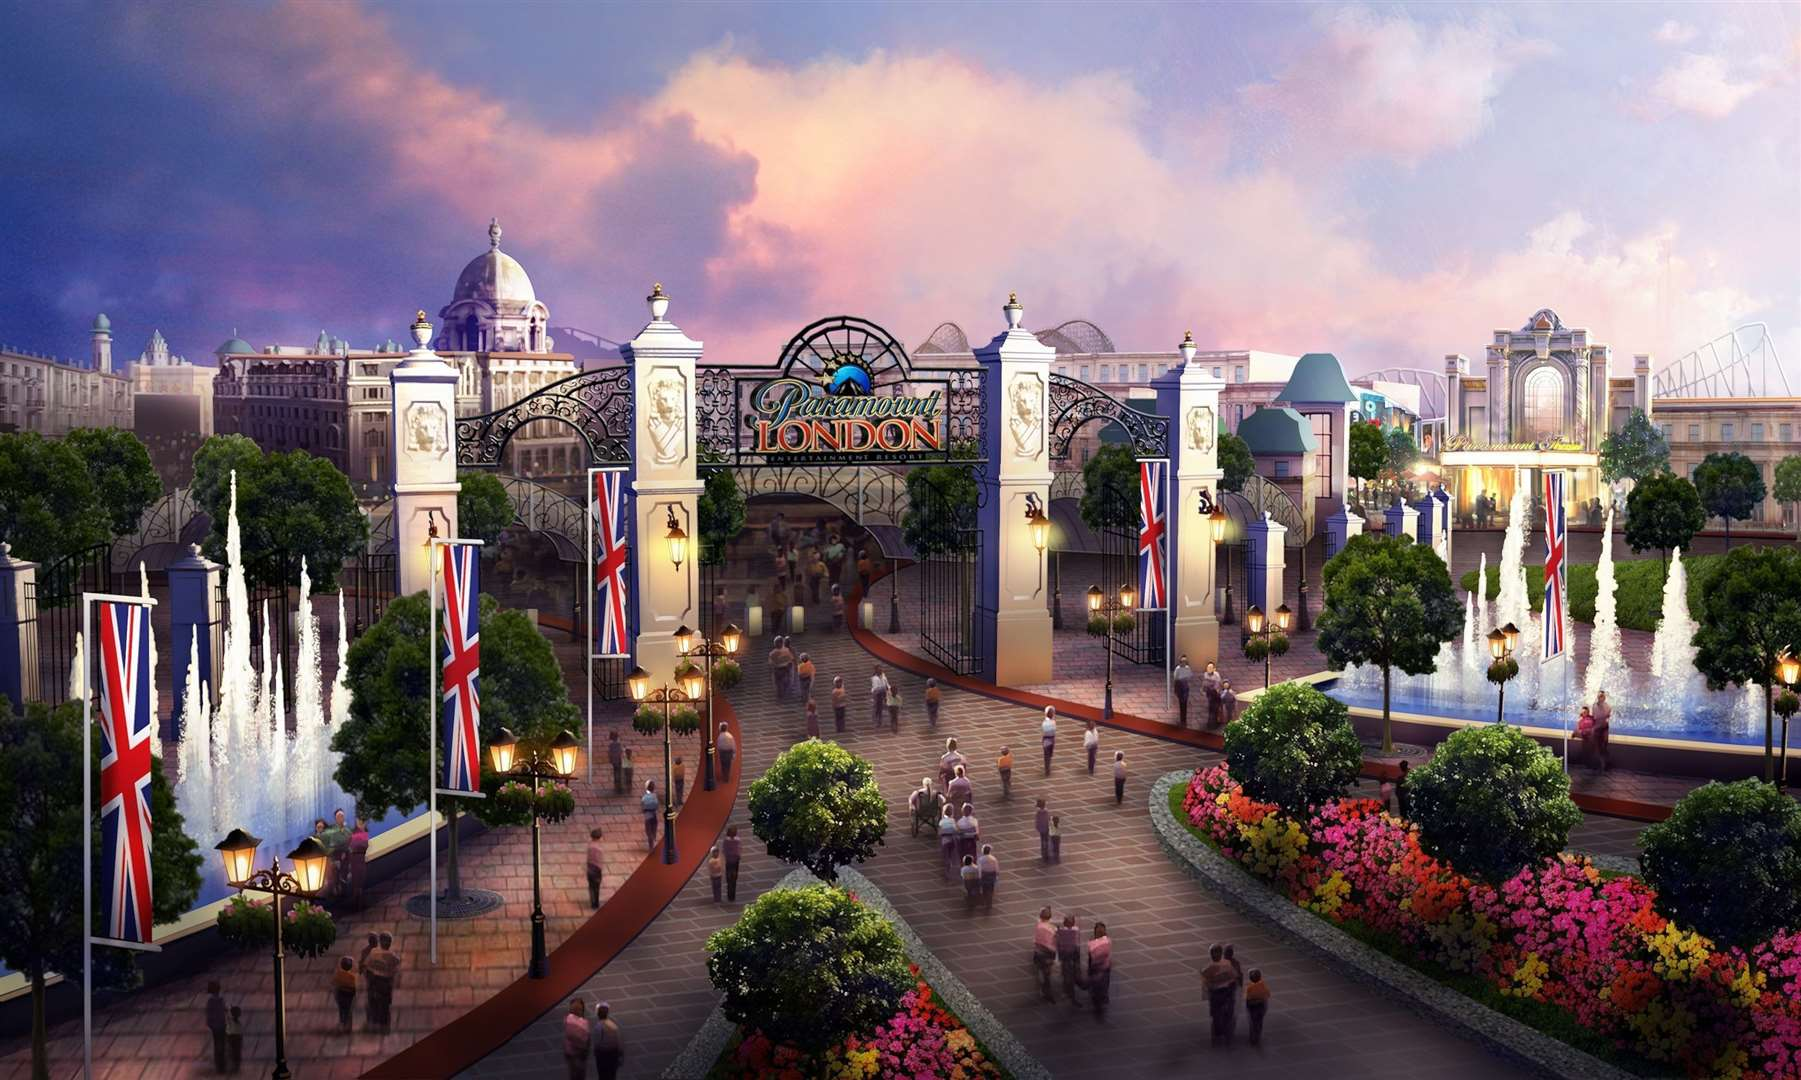 How the London Resort was originally to have looked before Paramount initially pulled out of the project